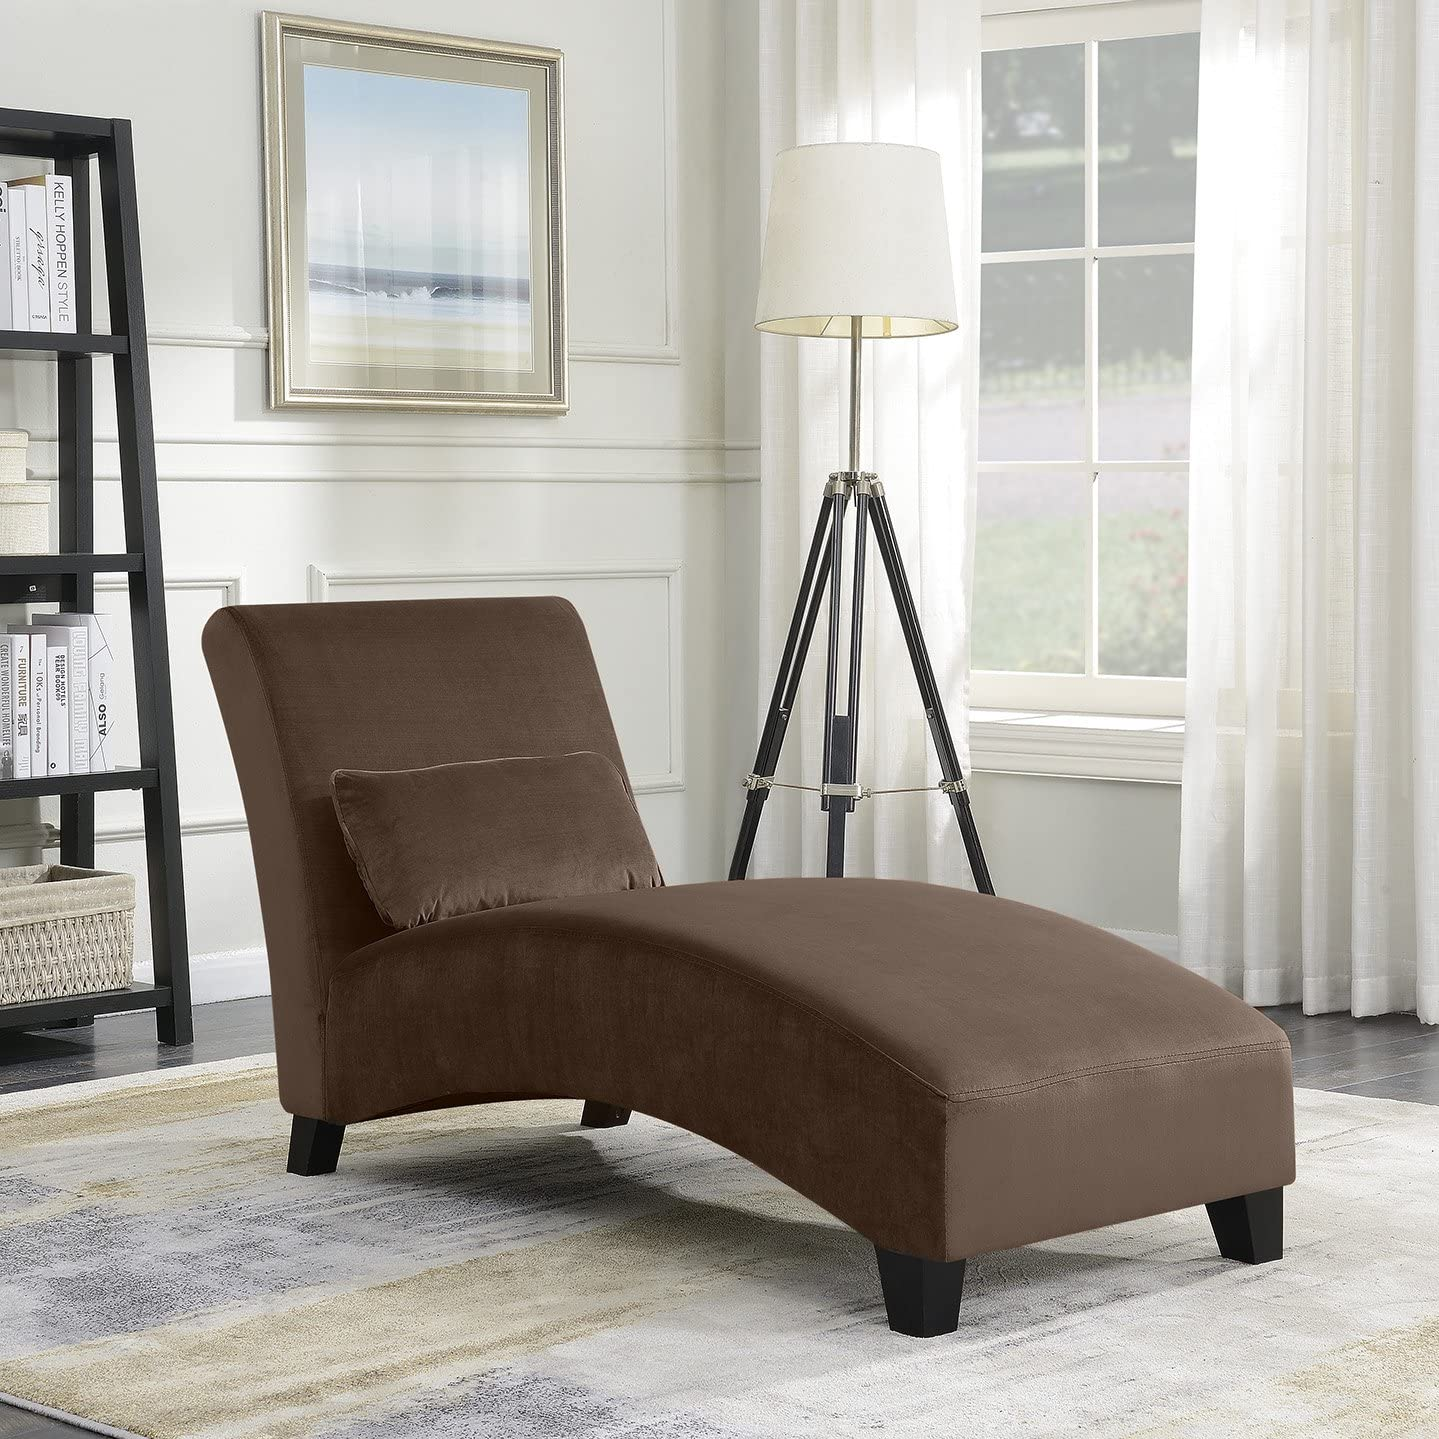 - Amazon.com: BELLEZE Chaise Lounge Indoor Furniture Living Room